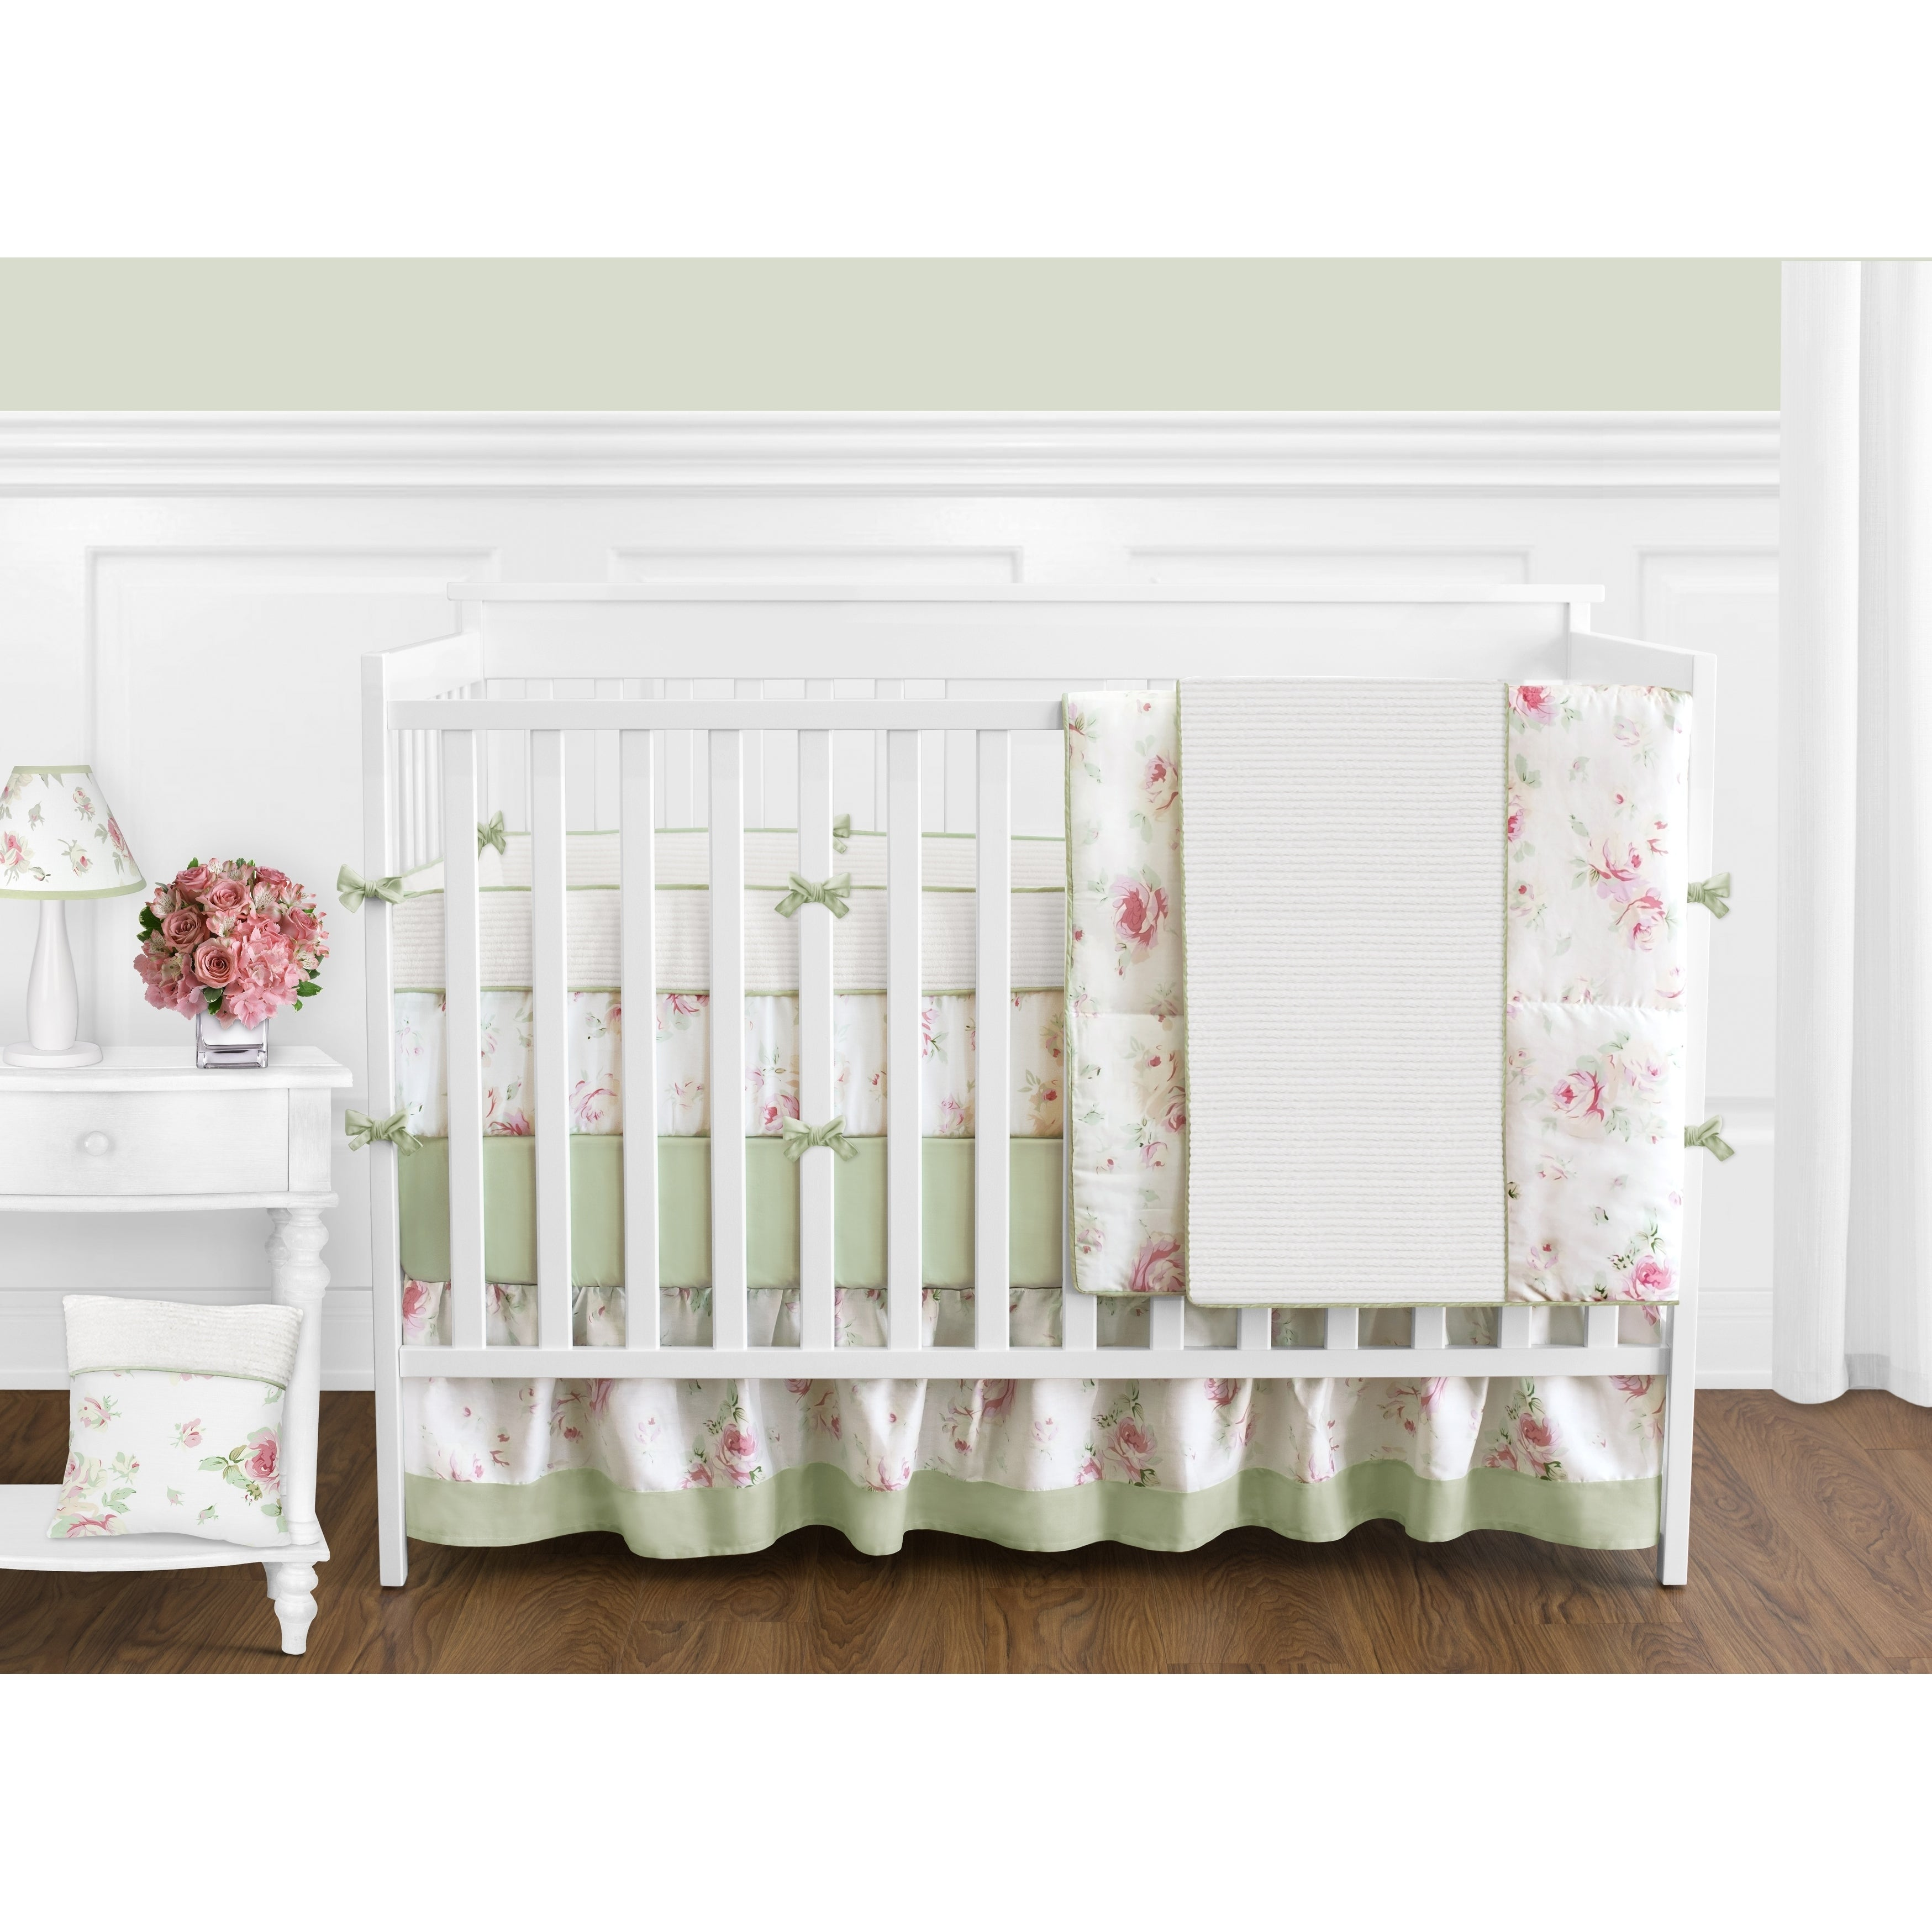 bedding cribs the set best design by setr nursery x forest r l collection piece jojo photo designs deer crib of sweet for com inspirations amazon arrow